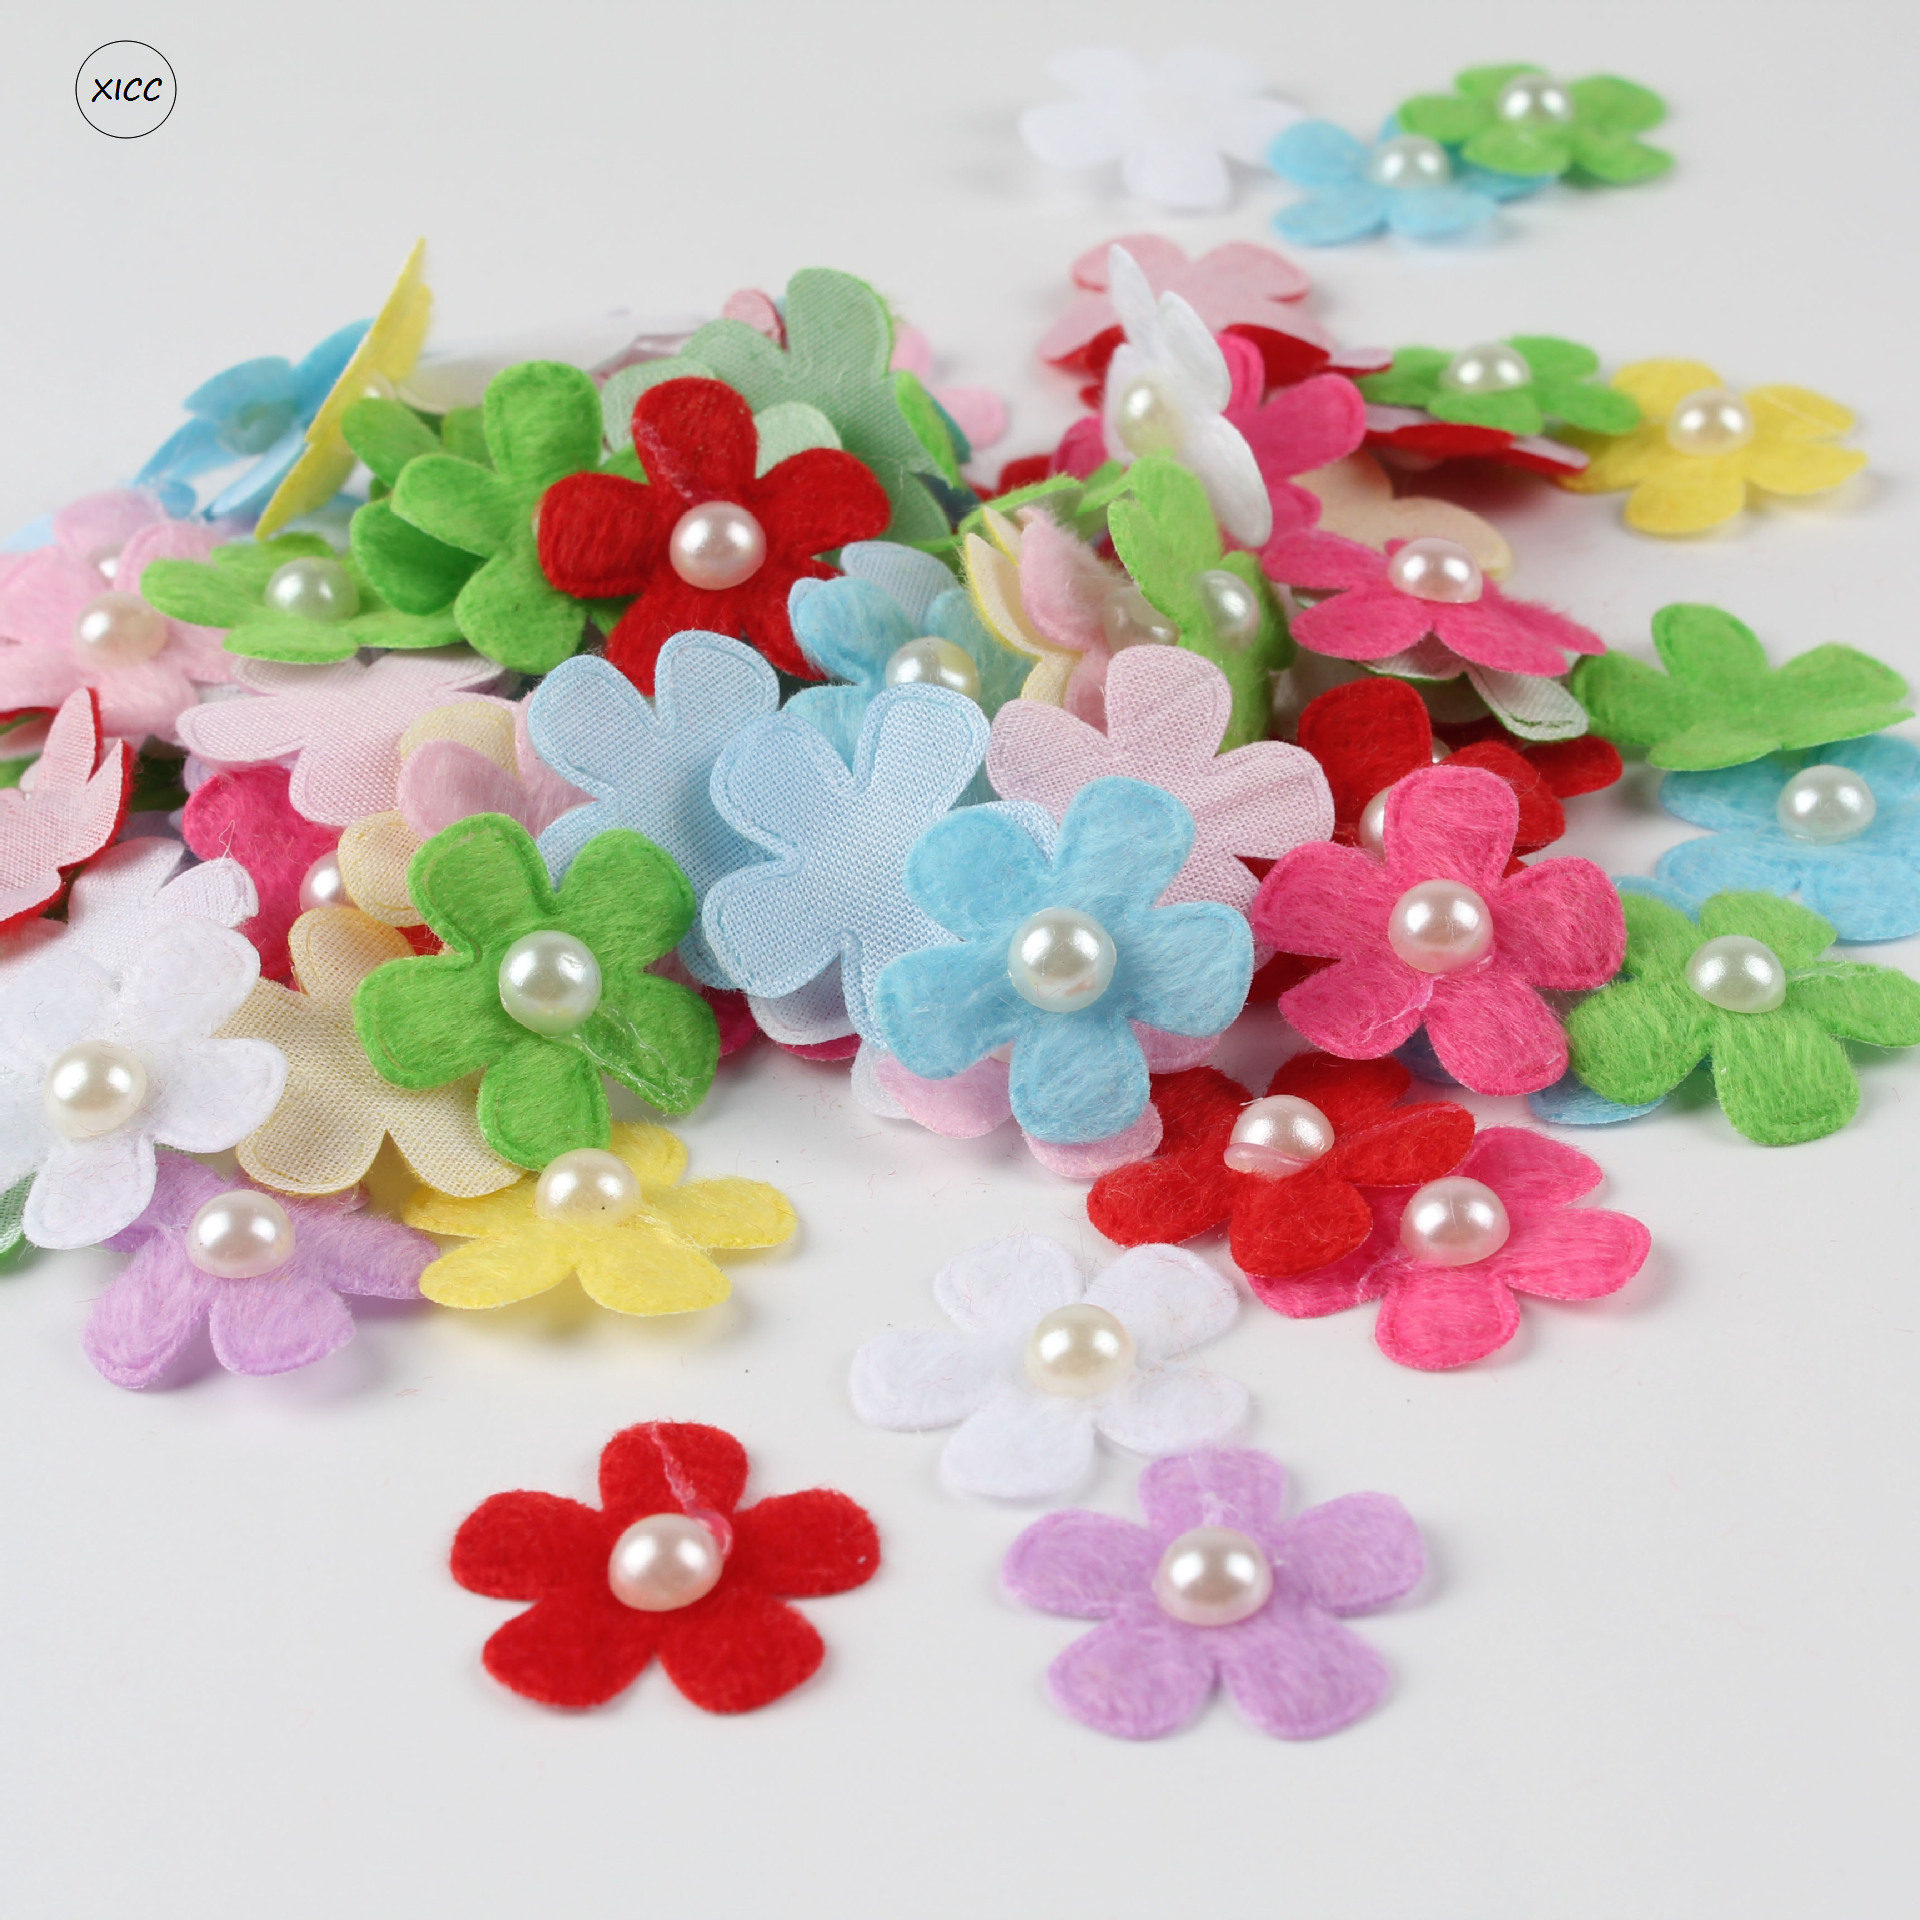 XICC 100PCS Colorful Pearl Flower Wool Felt Fabric Cloth Hair Rope DIY Handmade Accessories Sticker Applique Patches Felt Pad